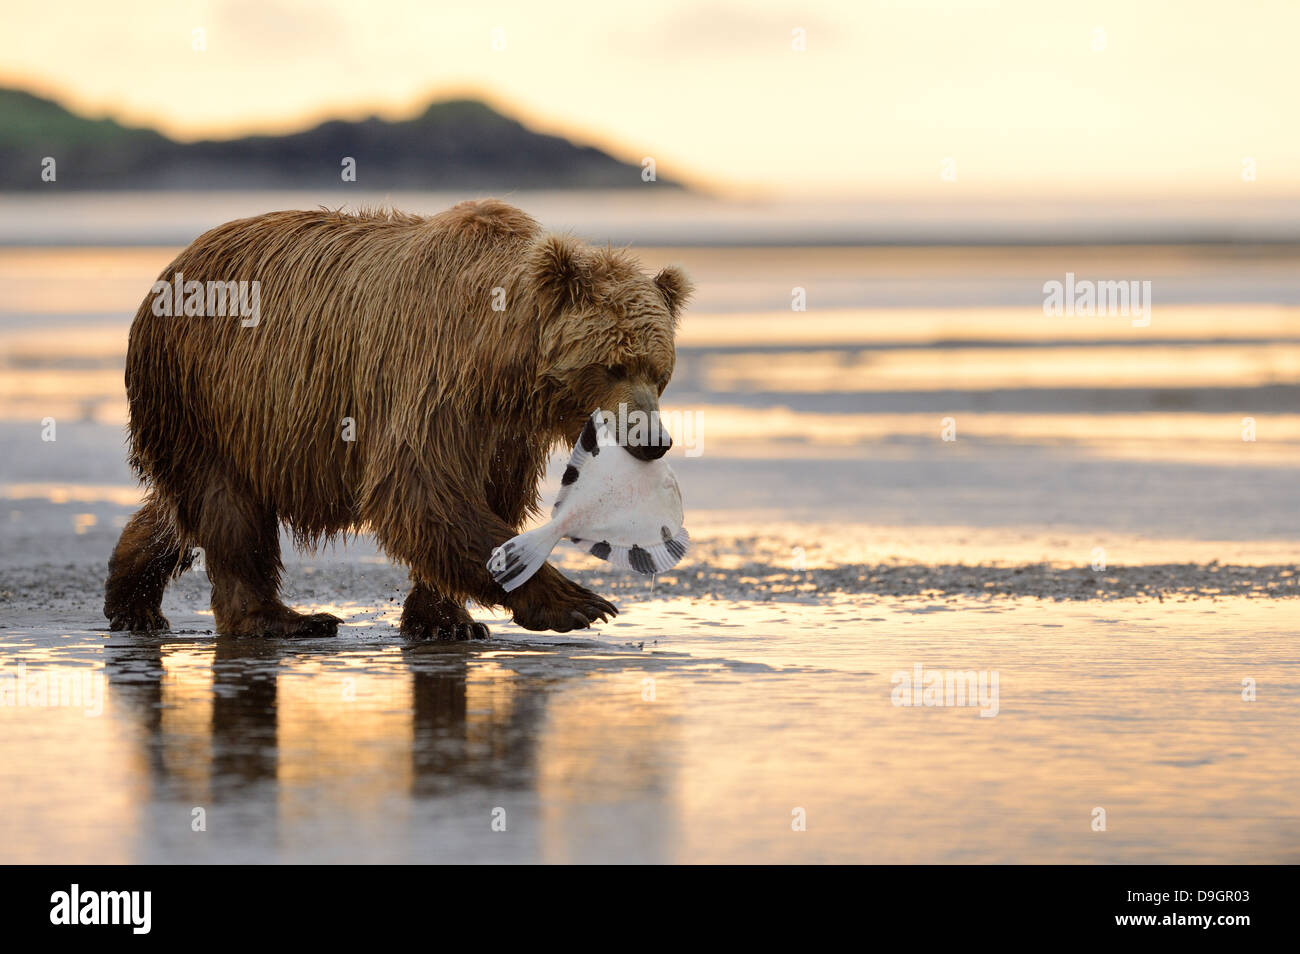 Grizzly Bear walking with caught fish in mouth - Stock Image